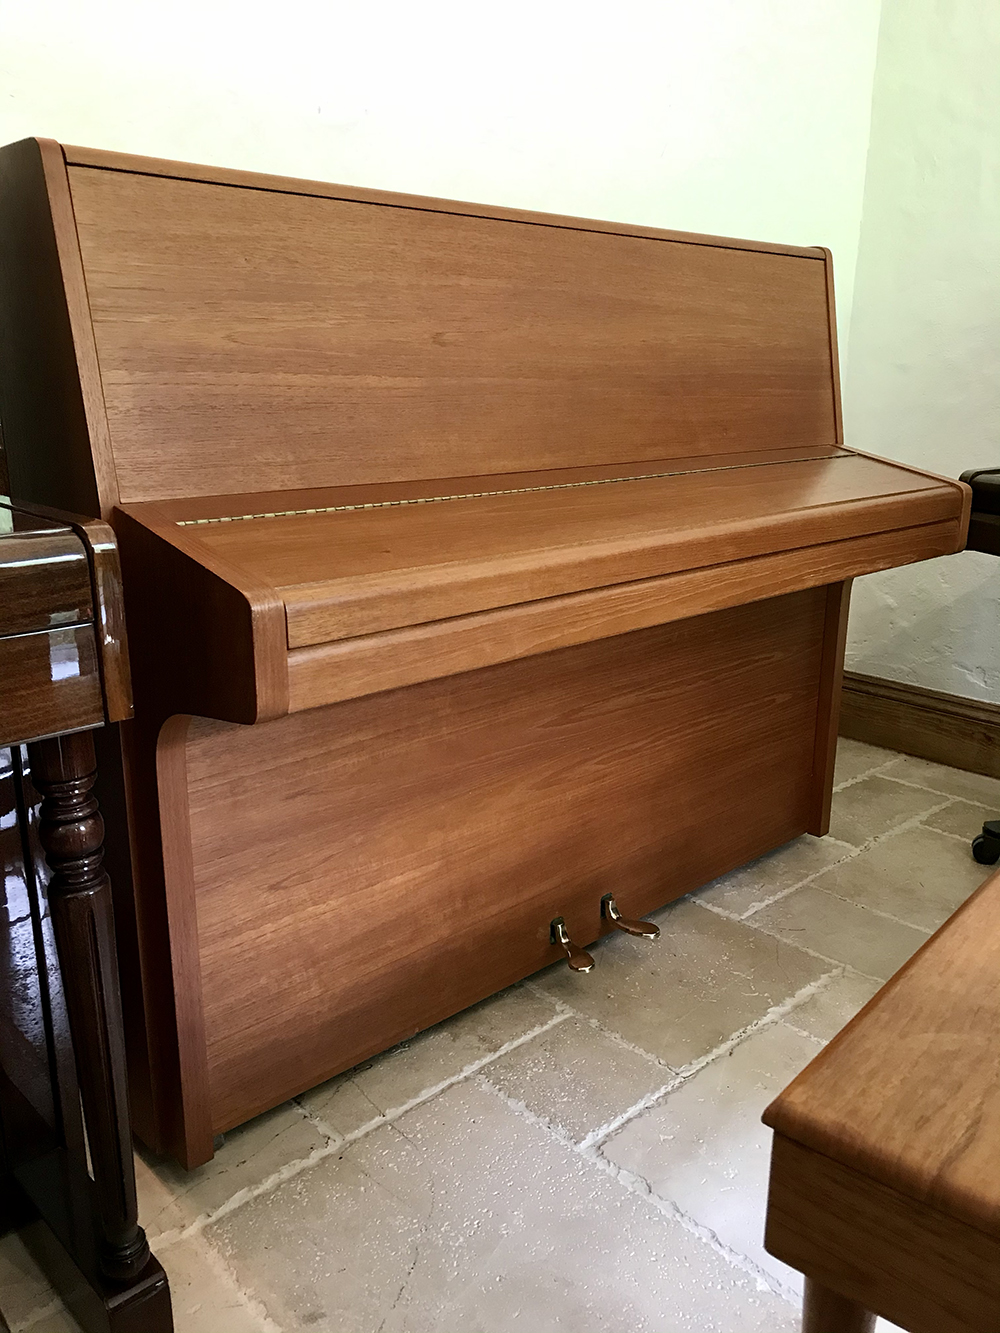 knight-k10-used-upright-Piano-Dorset-for-sale-5.jpg